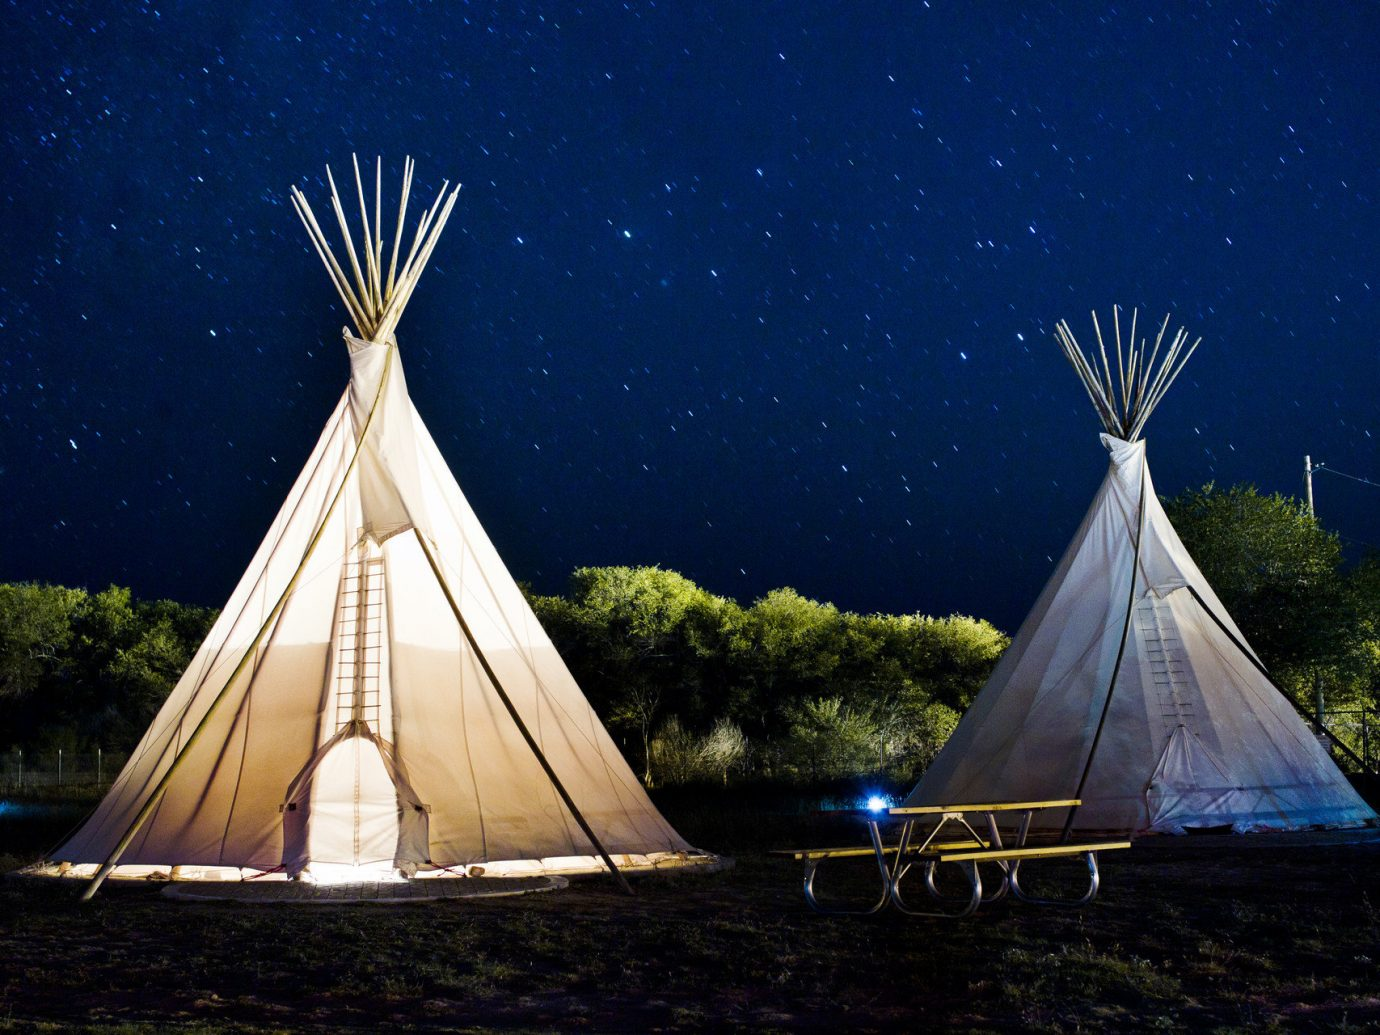 artistic artsy calm Exterior Hip isolation night Night Sky quirky remote serene stars teepee trendy Trip Ideas tepee building outdoor landmark vehicle